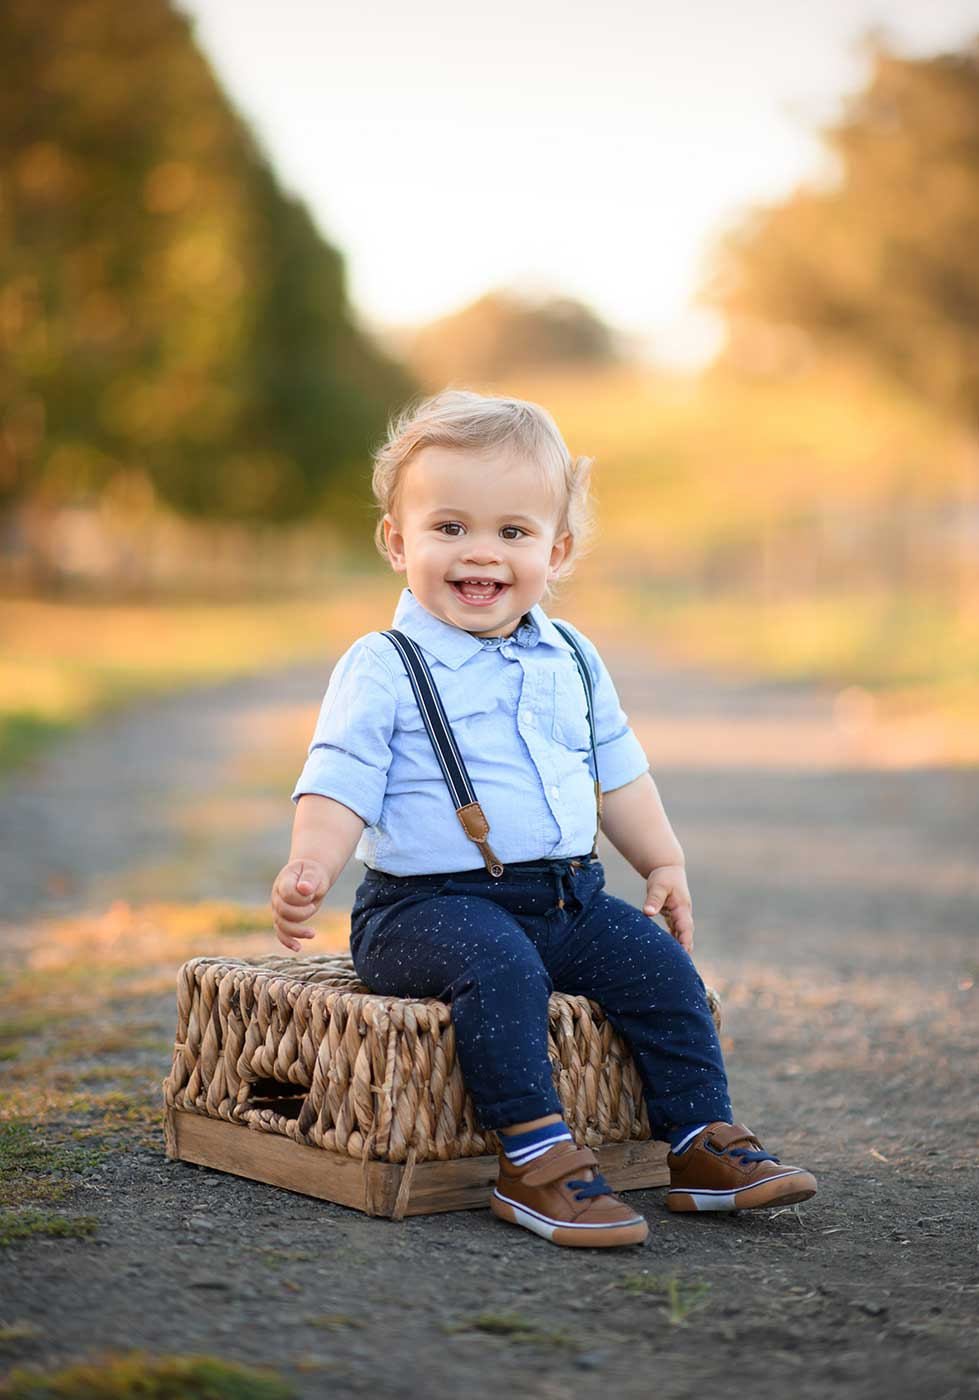 Happy toddler sitting on a basket at a farm and smiling